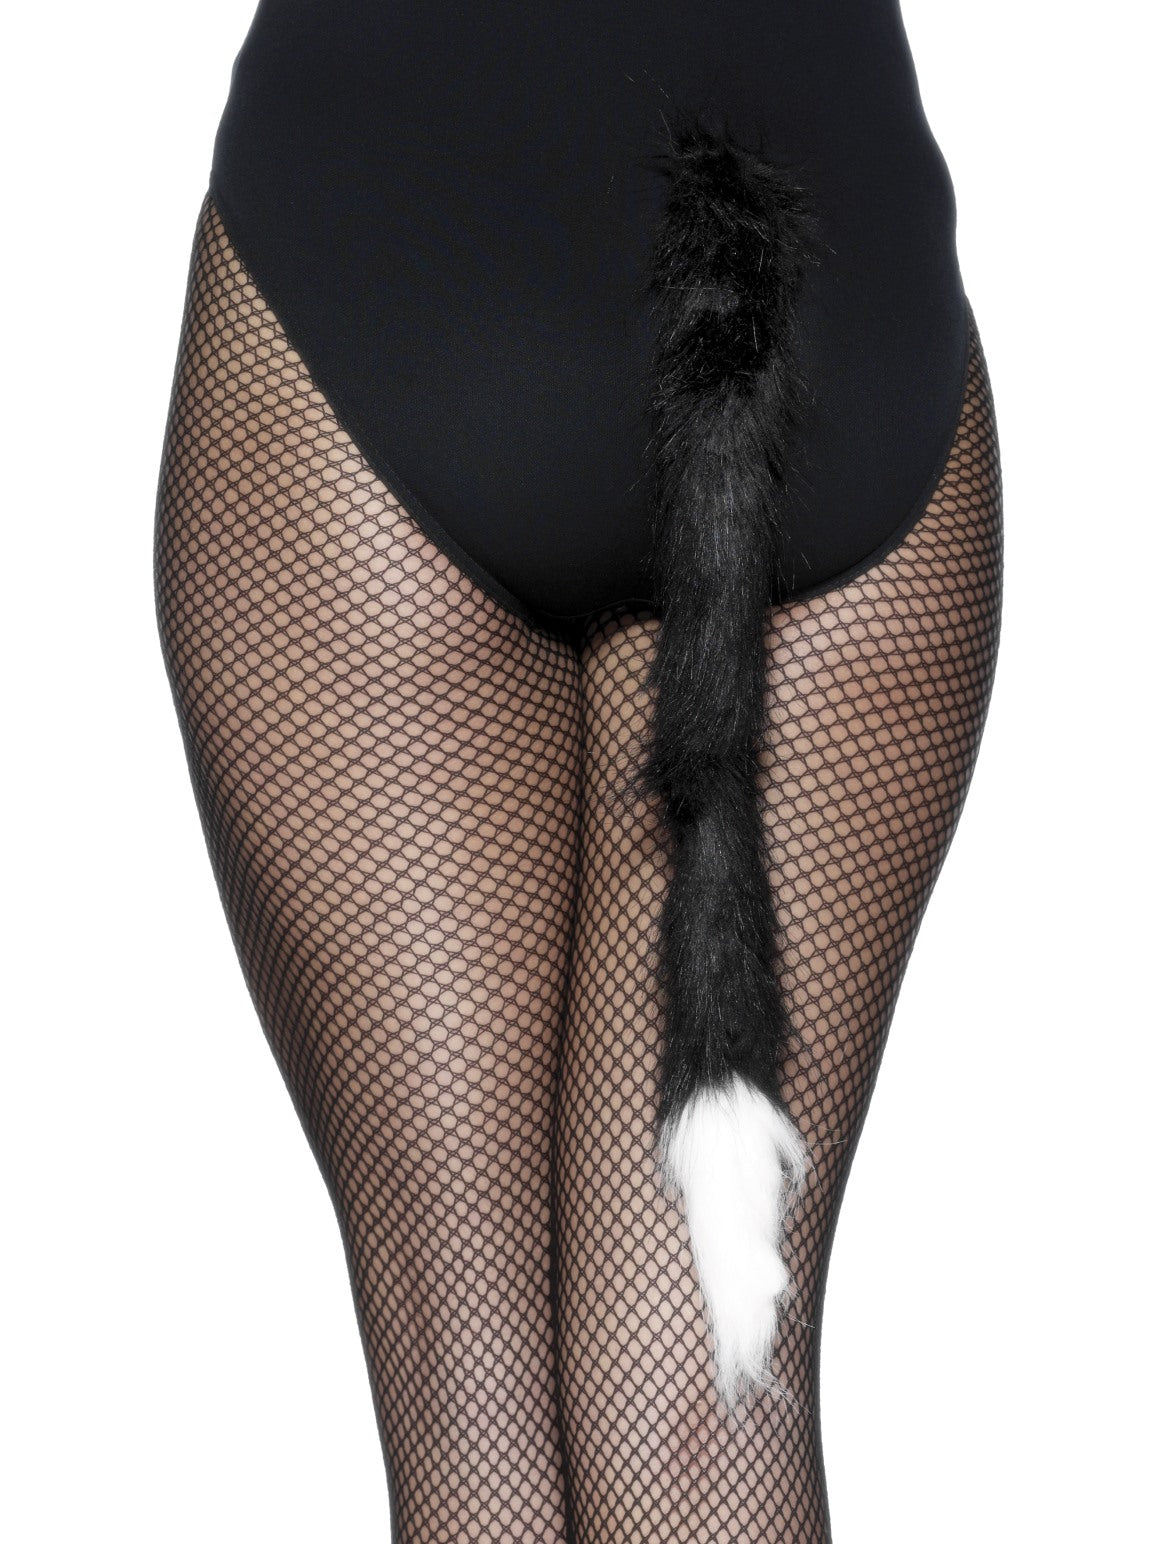 Black Cat's Tail